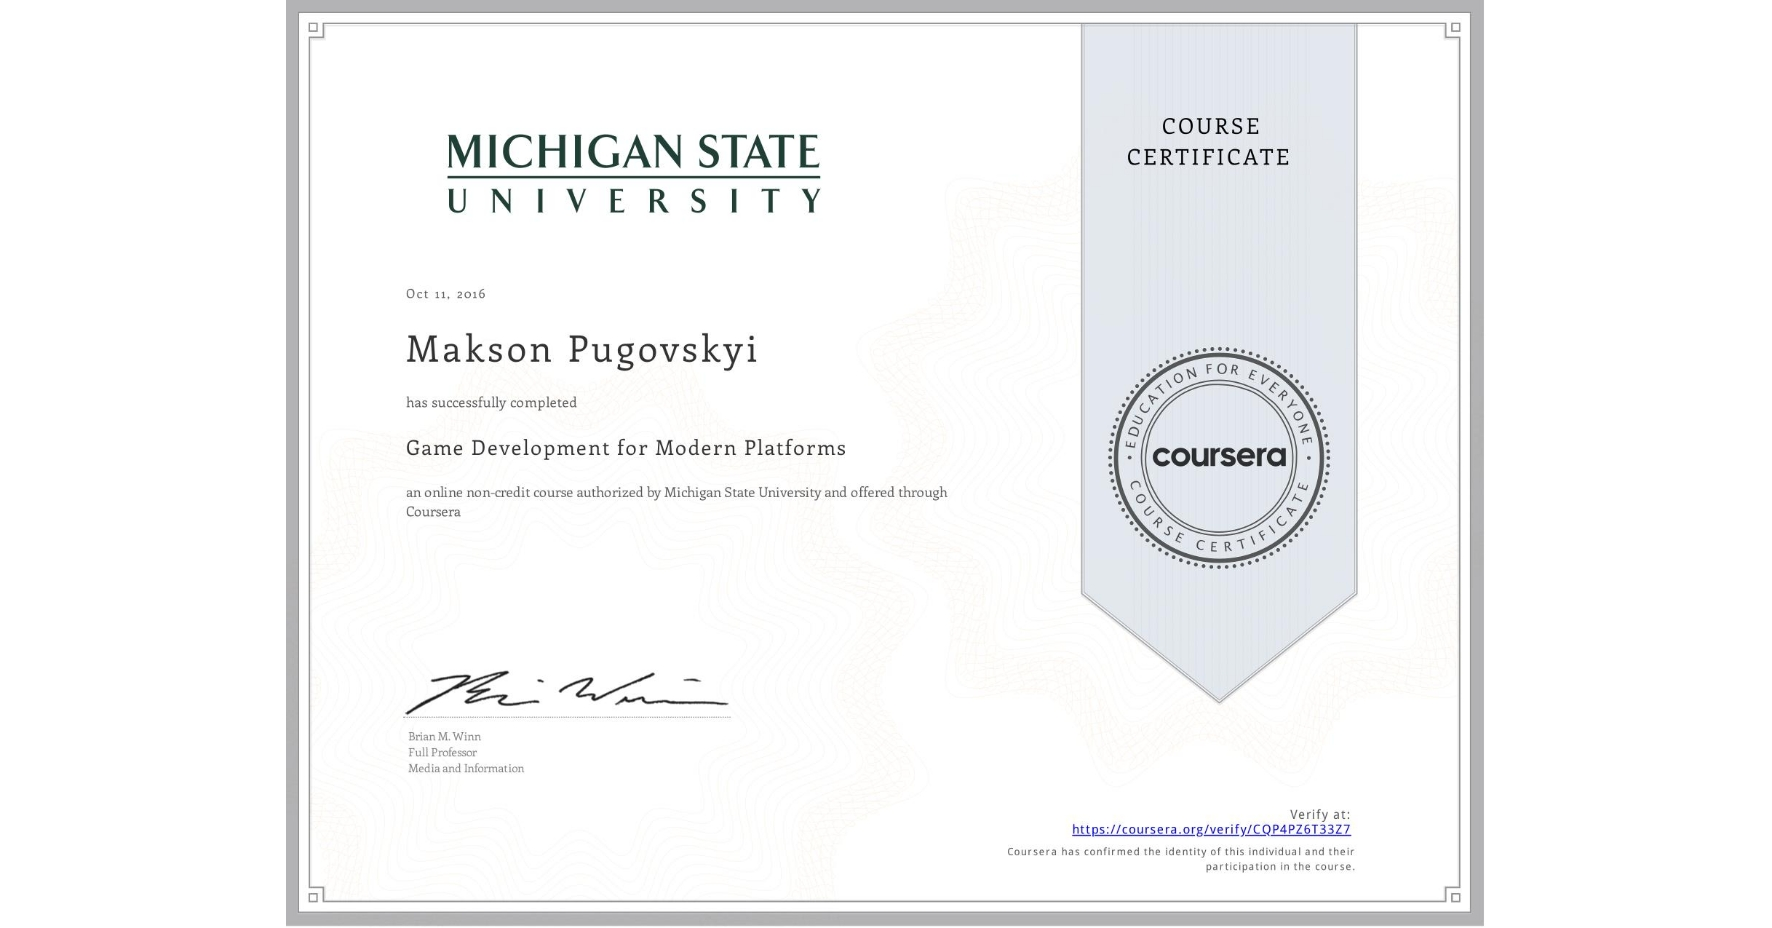 View certificate for Makson Pugovskyi, Game Development for Modern Platforms, an online non-credit course authorized by Michigan State University and offered through Coursera